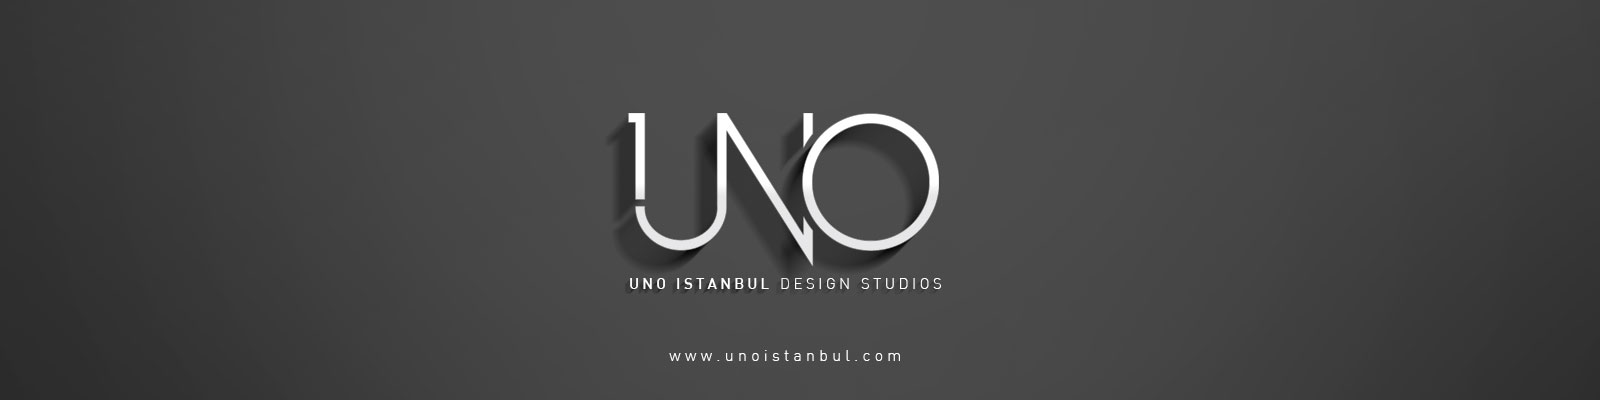 UNO İstanbul banner fotograf